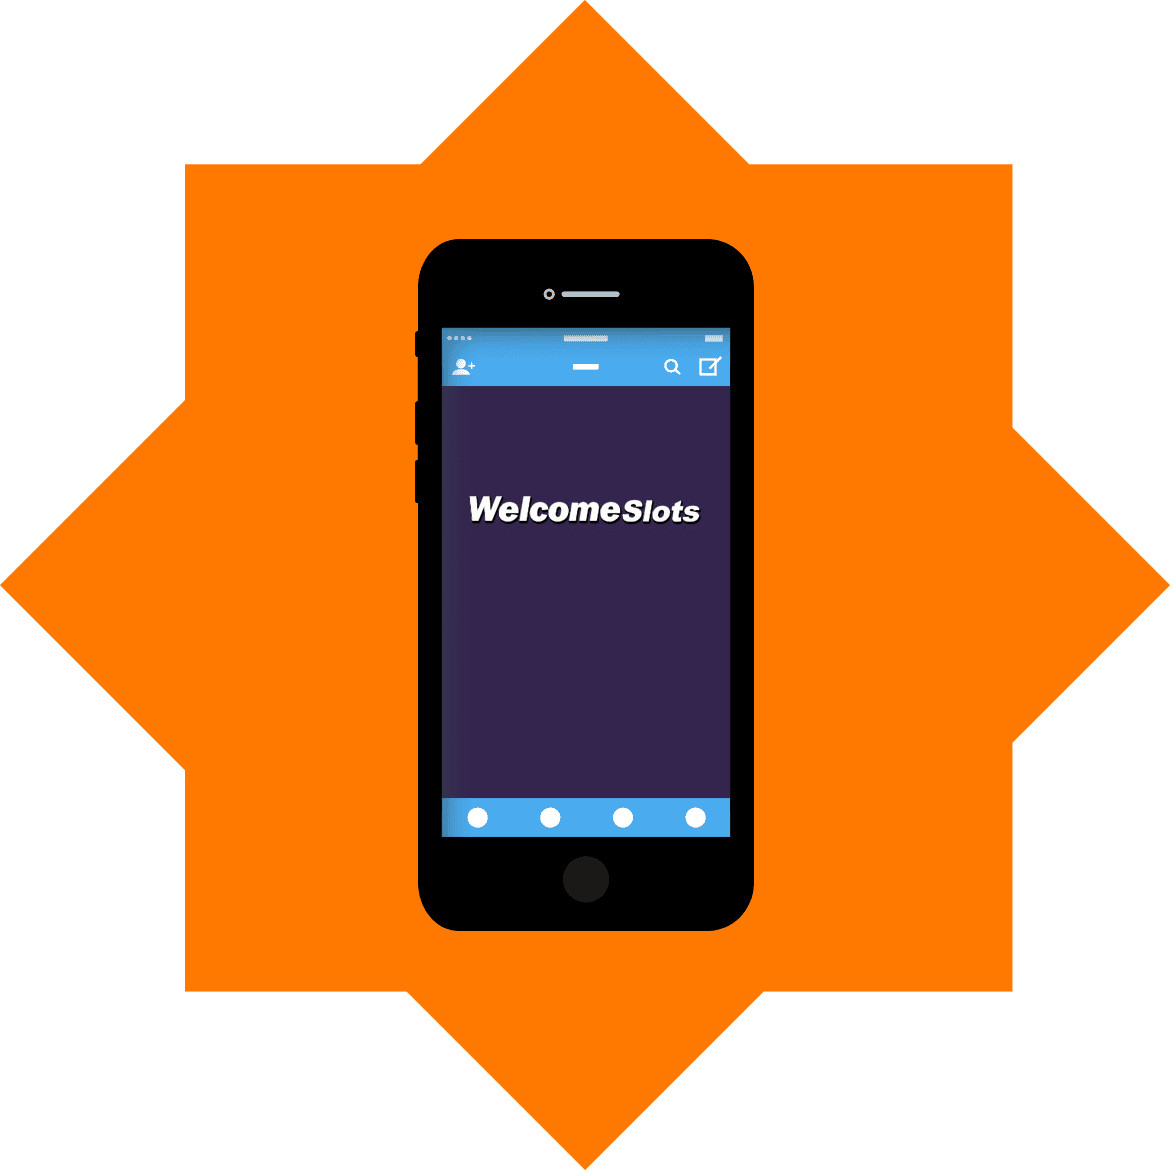 WelcomeSlots - Mobile friendly